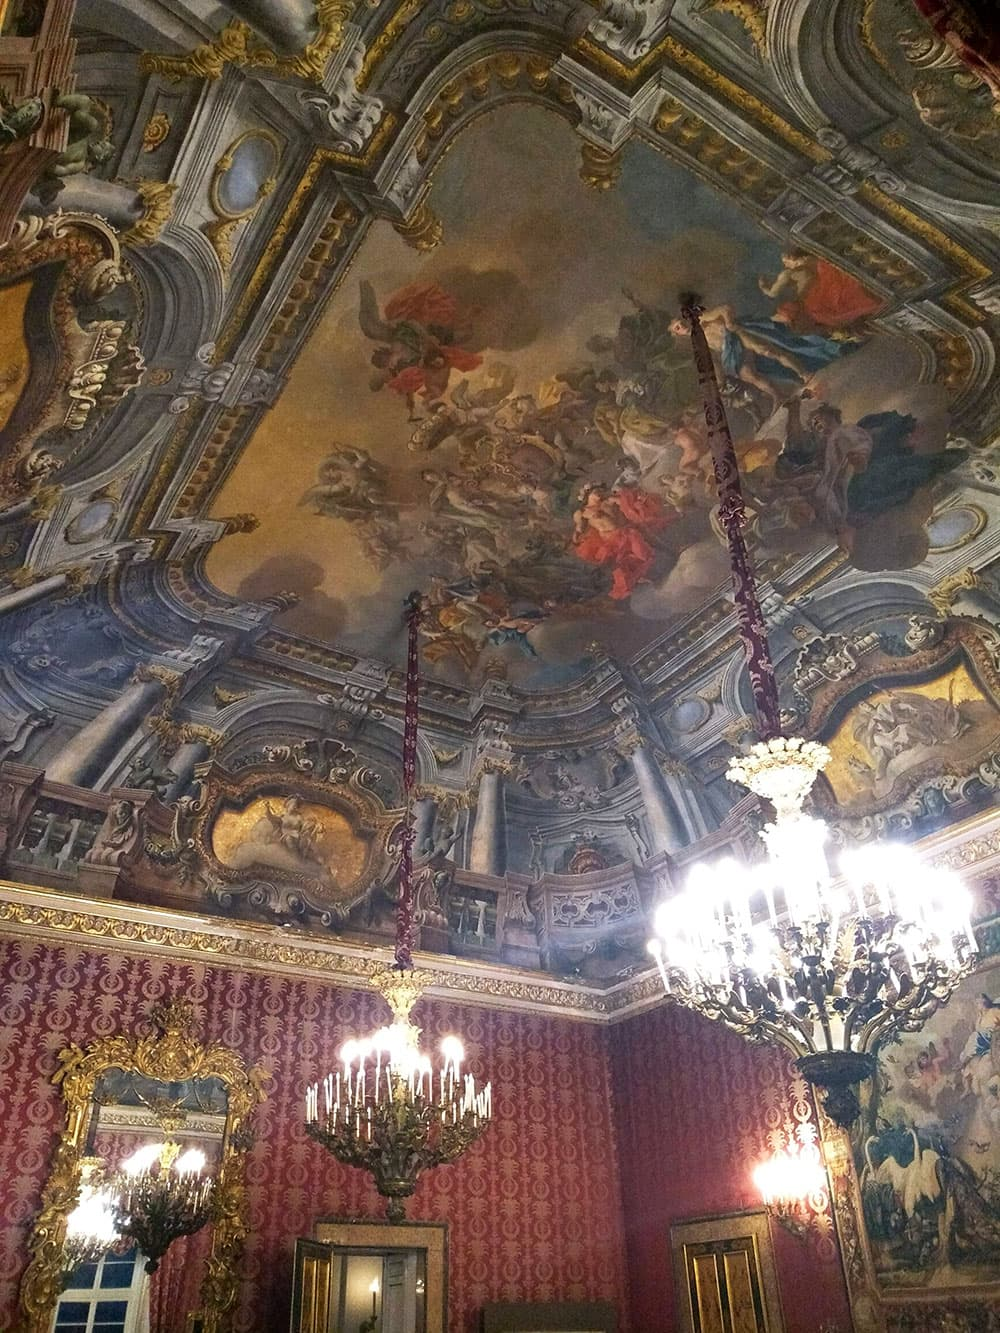 Opulent fresco covered room inside the Royal Palace